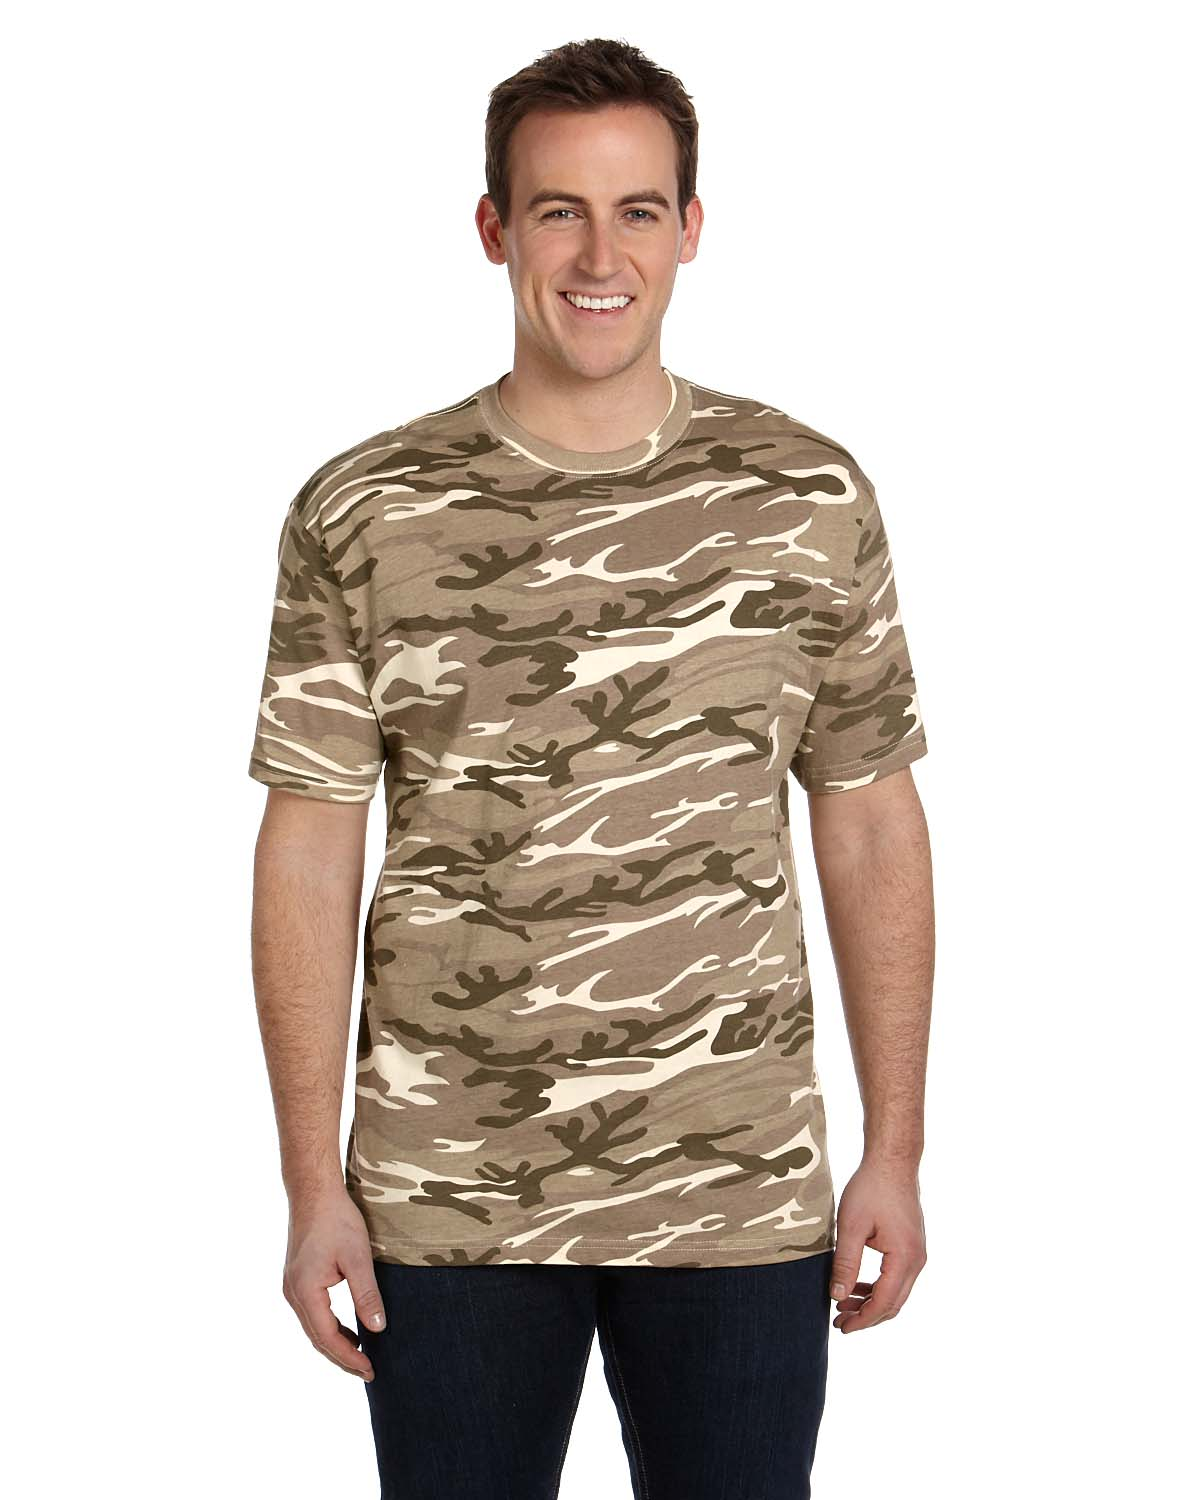 Anvil Midweigjht Camouflage T-Shirt